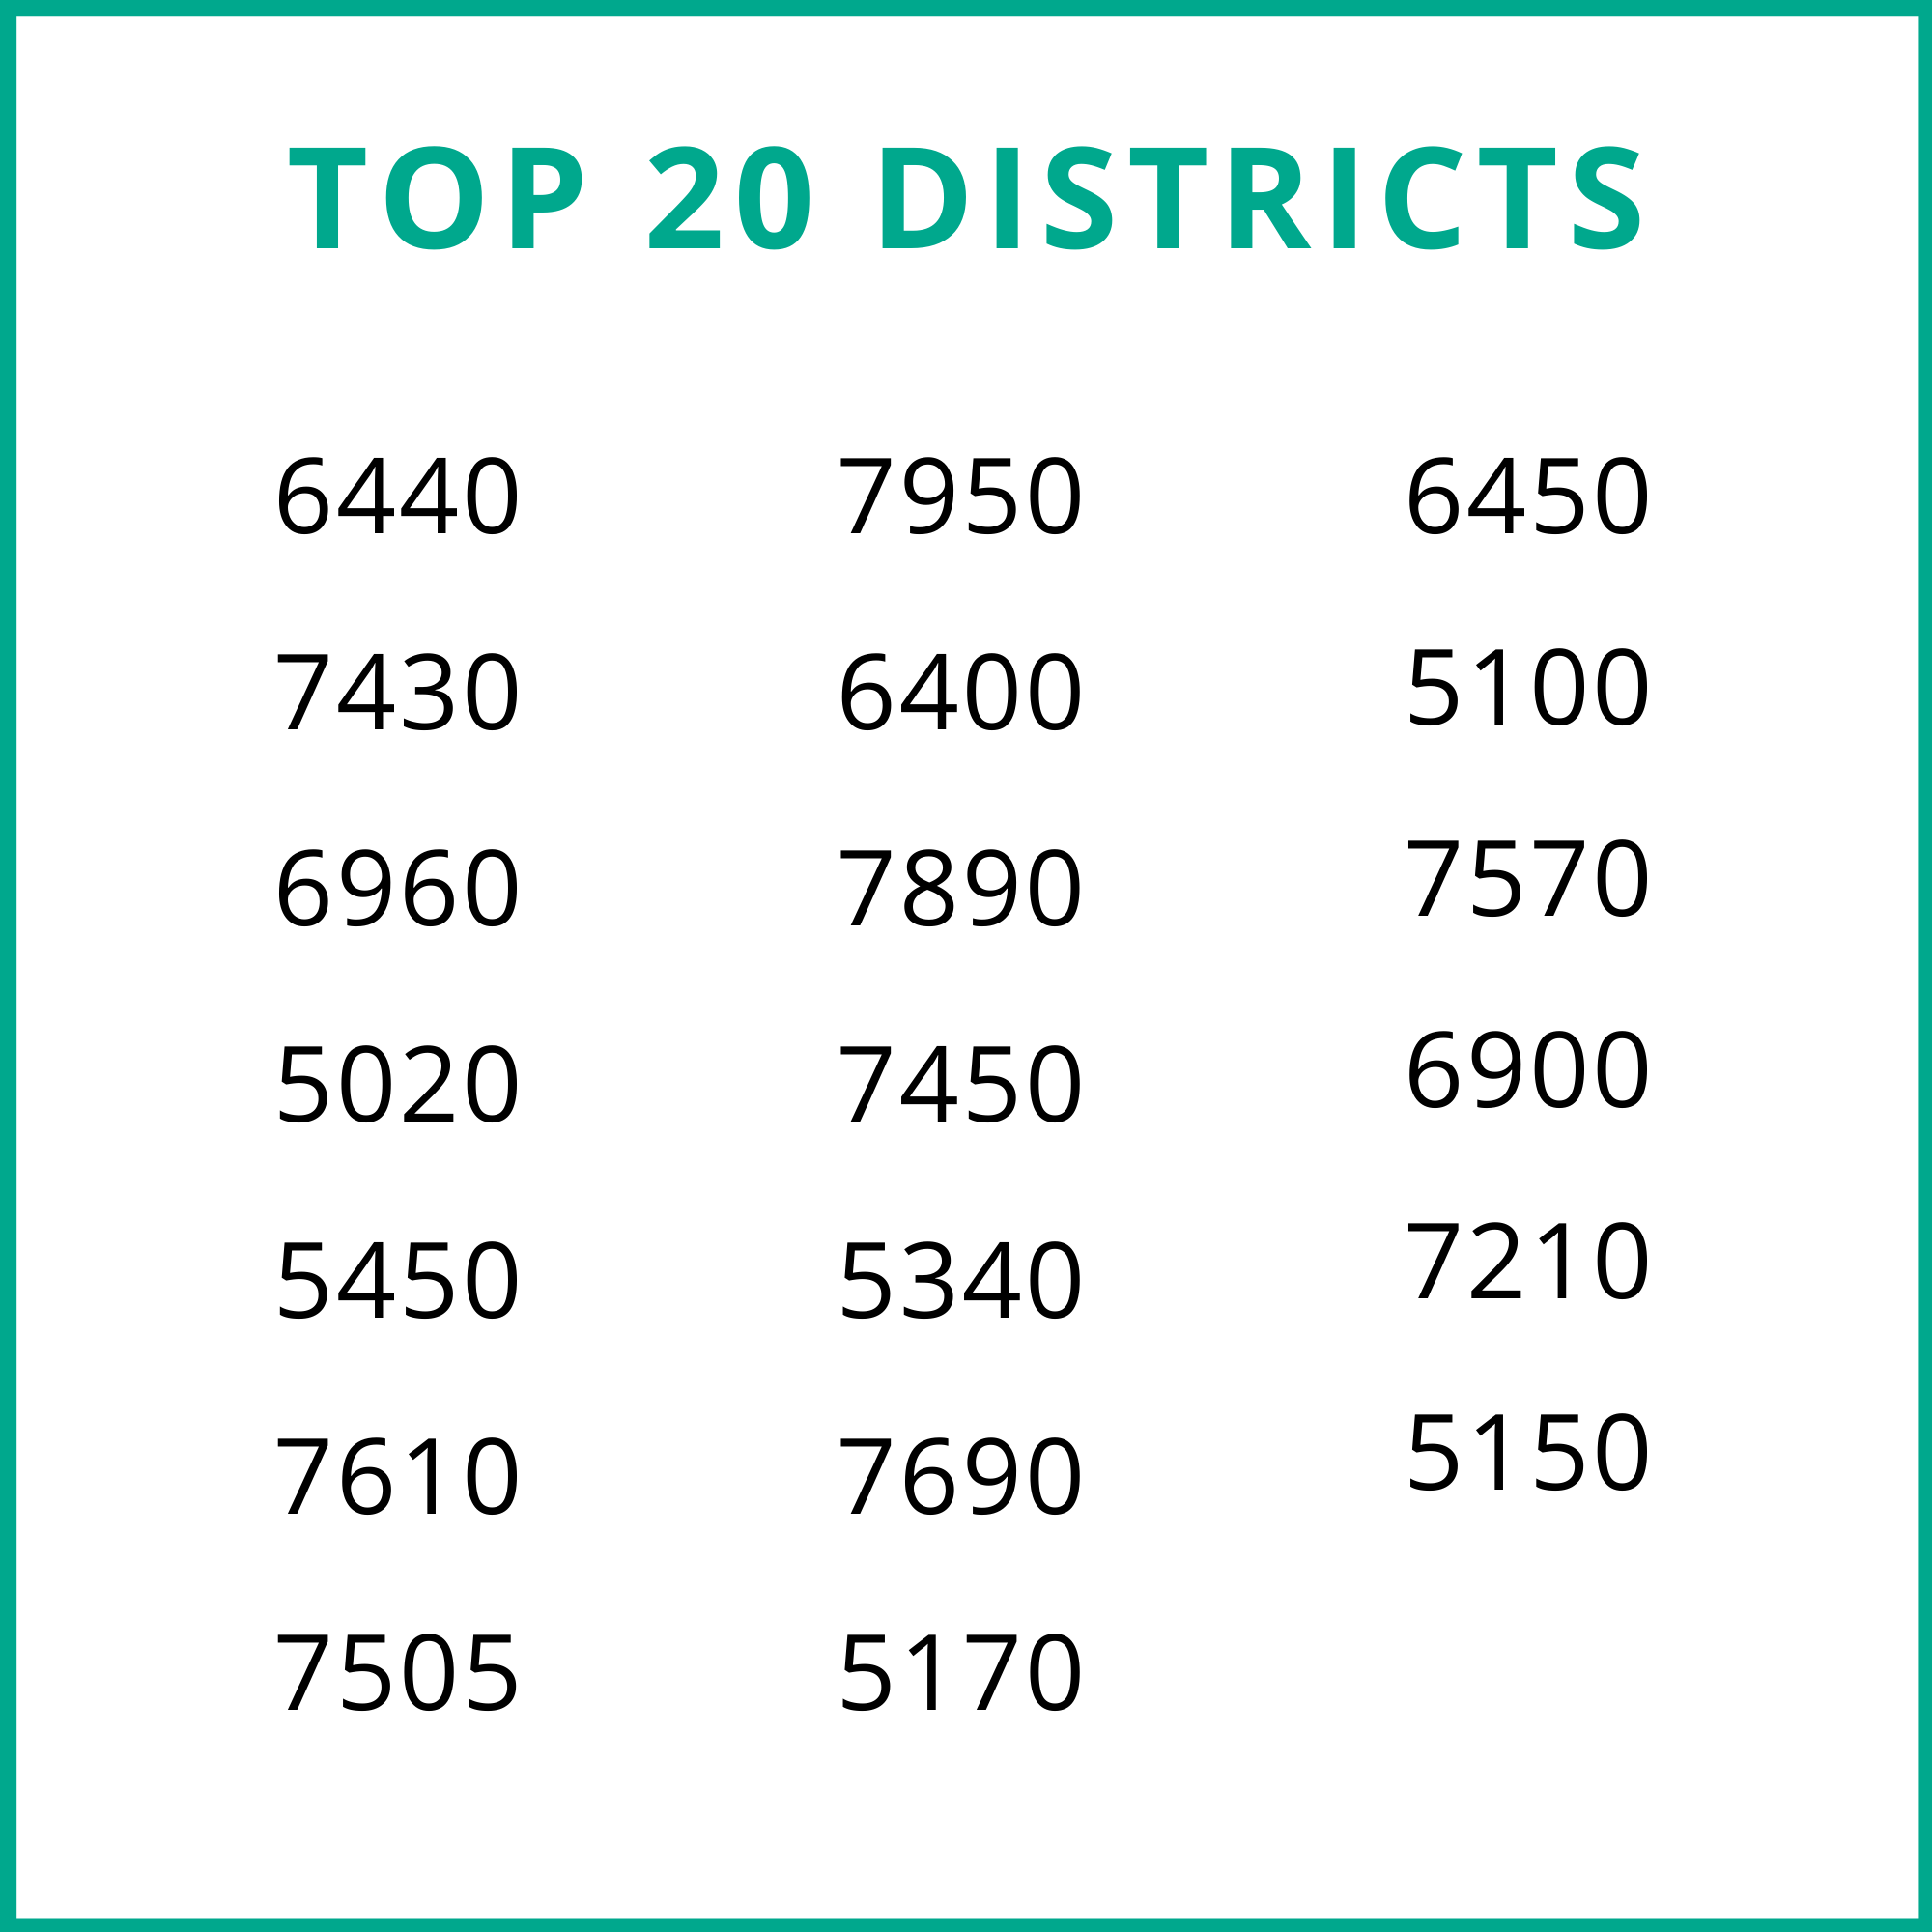 Top 20 Districts: 6440, 7430, 6920, 5020, 5450, 7610, 7505, 7950, 6400, 7890, 7450, 5340, 7690, 5170, 6450, 5100, 7570, 6900, 7210, 5150